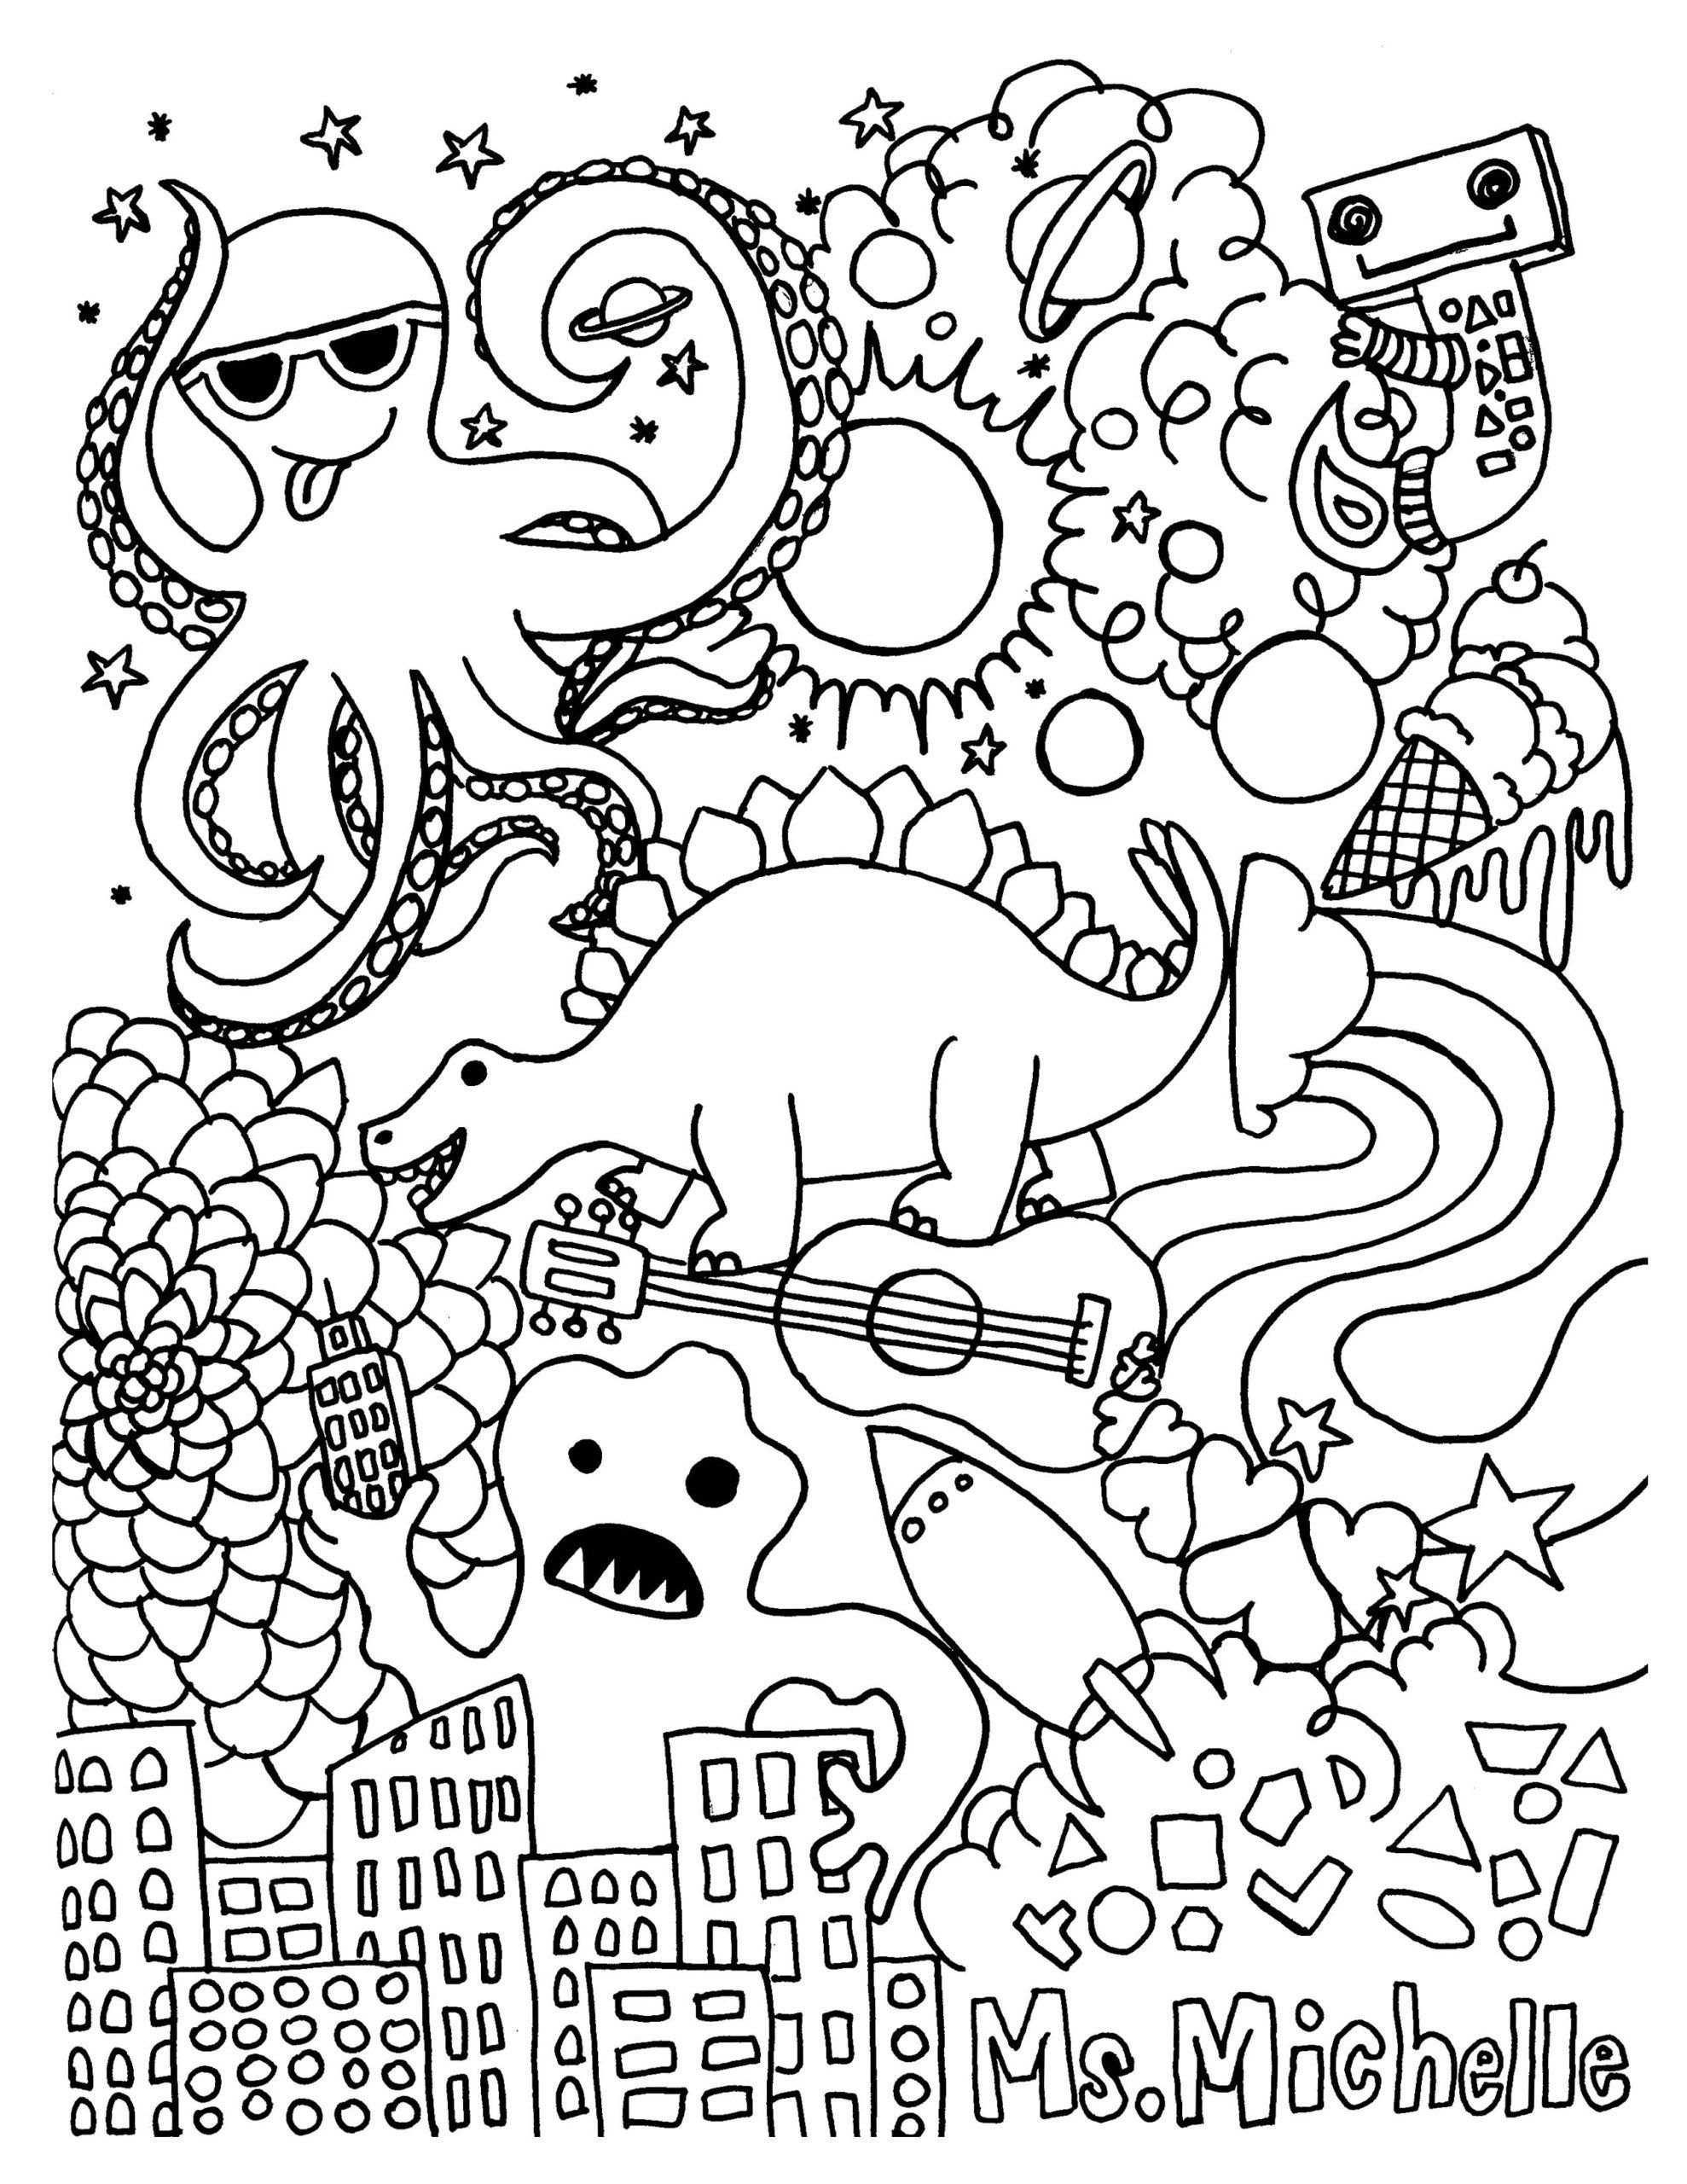 Coloring Worksheets For 3rd Grade Coloring Pages Free Color Worksheets For Preschoolers Coloring Pages Inspirational Coloring Books Mandala Coloring Pages